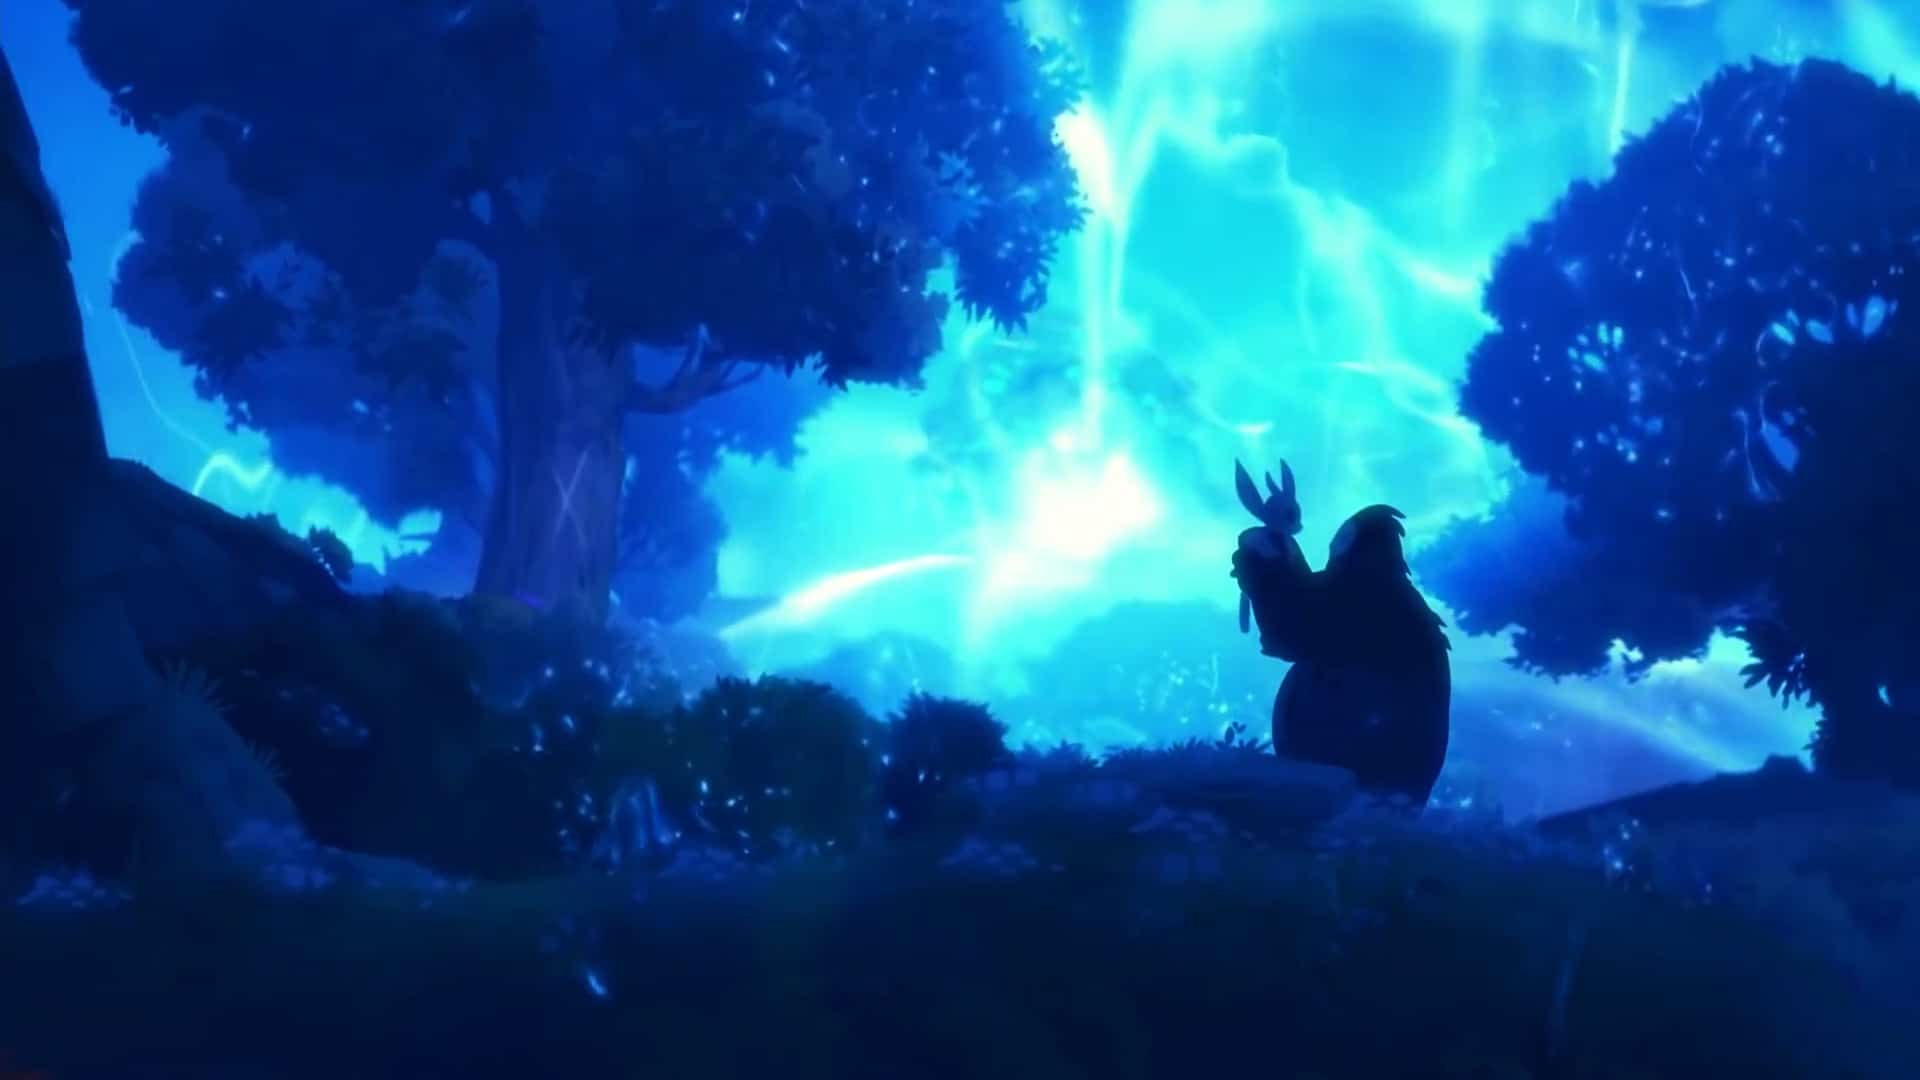 Ori and the Blind Forest: Definitive Edition – Launch Trailer